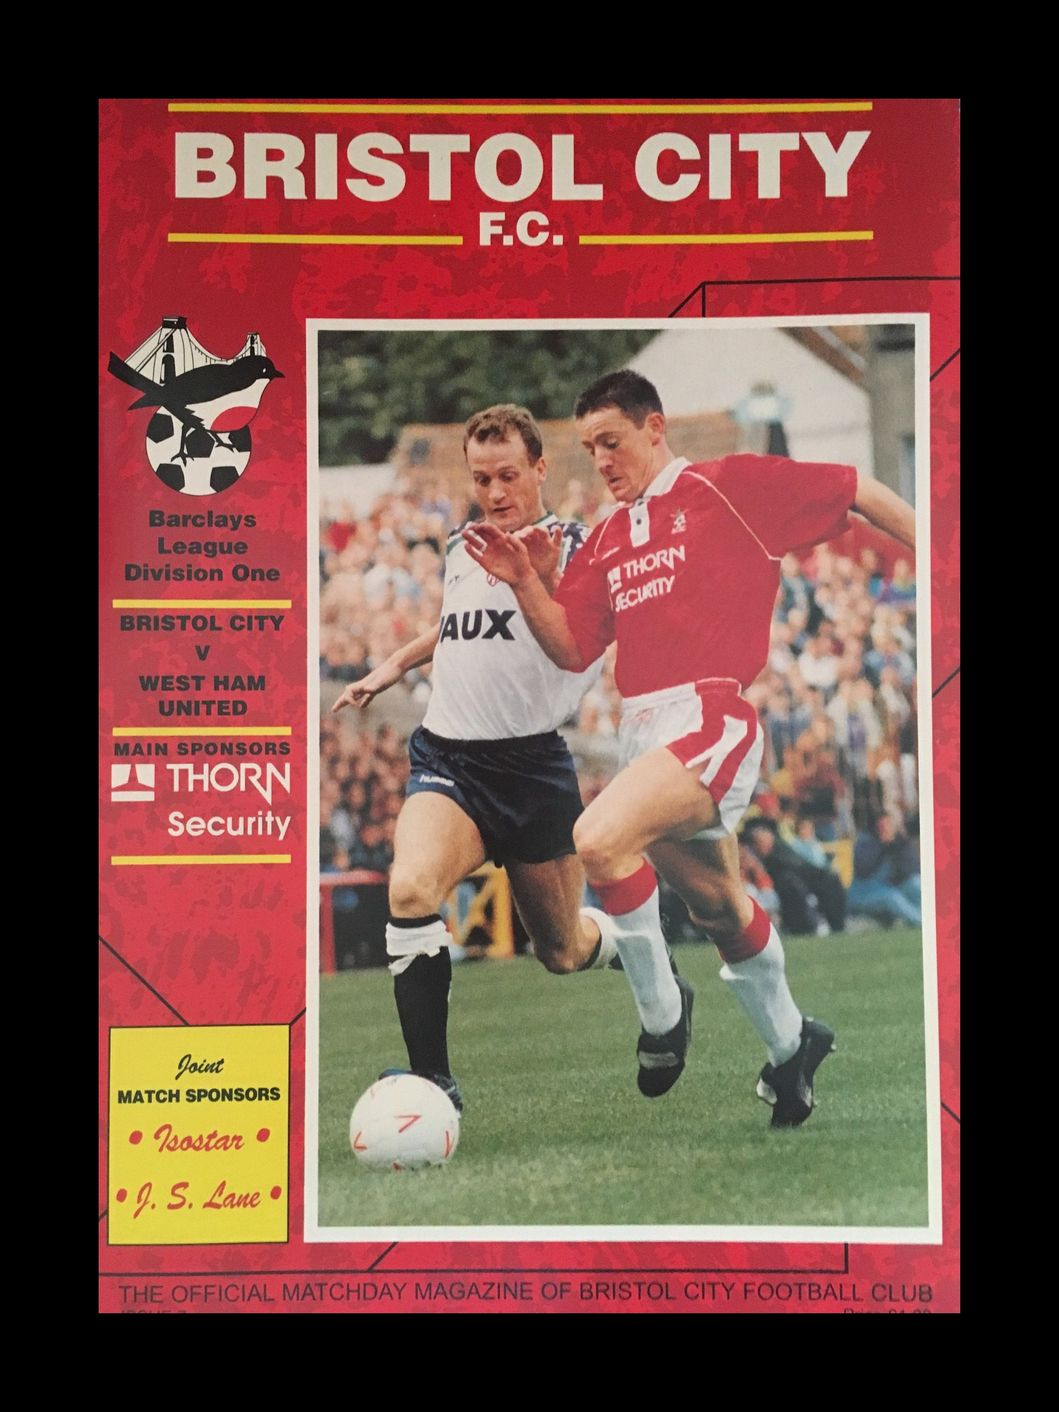 Bristol City v West Ham United 15-09-1992 Programme